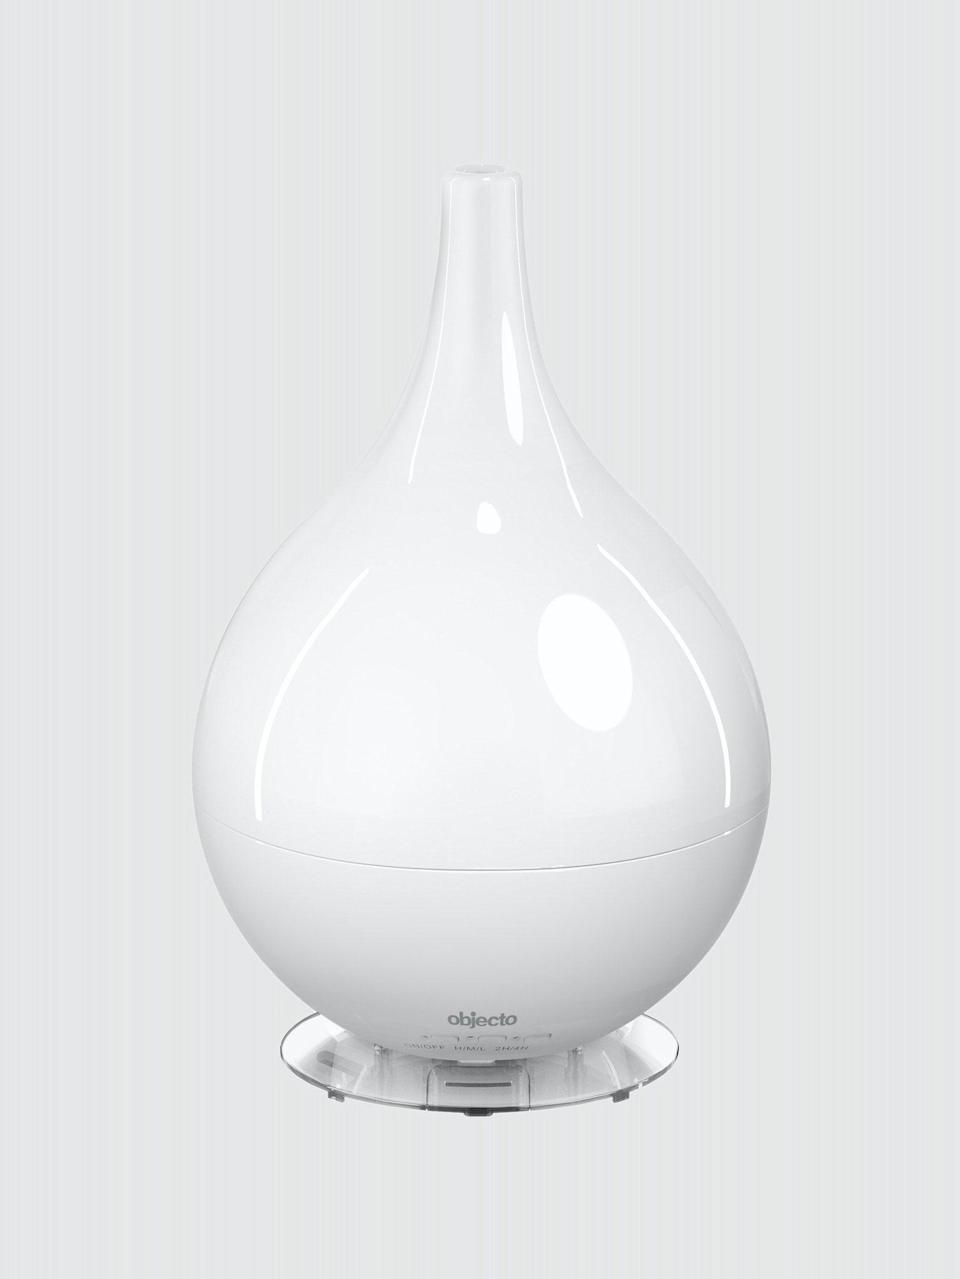 "<h2>H3 Hybrid Humidifier</h2><br>This humidifier runs in two or four-hour sequences and automatically shuts off when the tank is empty. <br><br><strong>Objecto</strong> H3 Hybrid Humidifier, $, available at <a href=""https://go.skimresources.com/?id=30283X879131&url=https%3A%2F%2Ffave.co%2F30WjhZm"" rel=""nofollow noopener"" target=""_blank"" data-ylk=""slk:Verishop"" class=""link rapid-noclick-resp"">Verishop</a>"